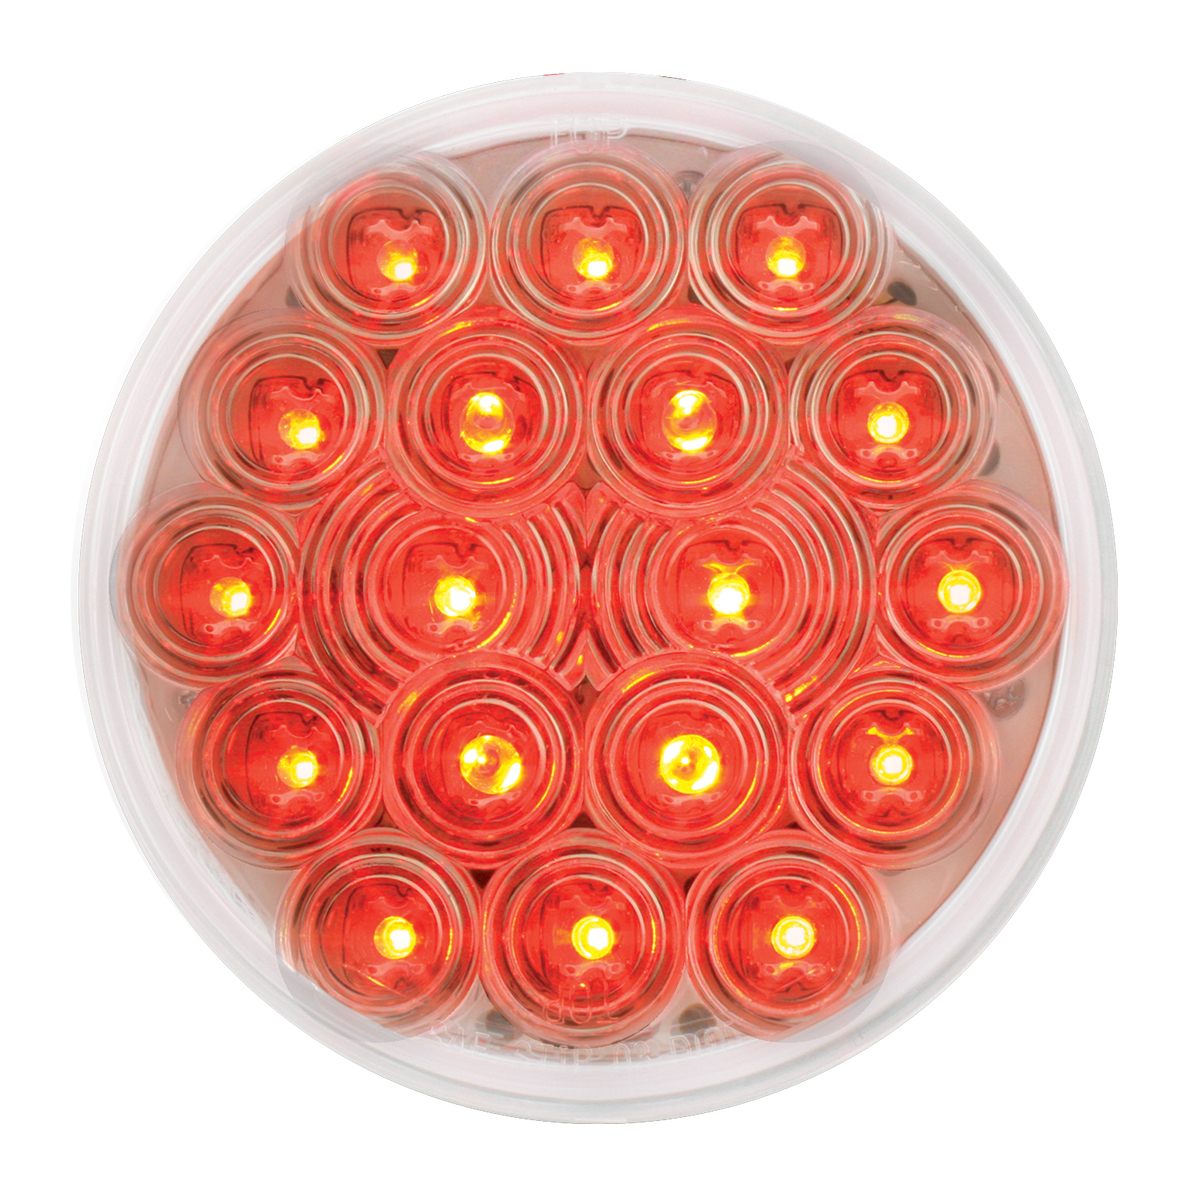 "76453 4"" Fleet LED Light in Red/Clear"